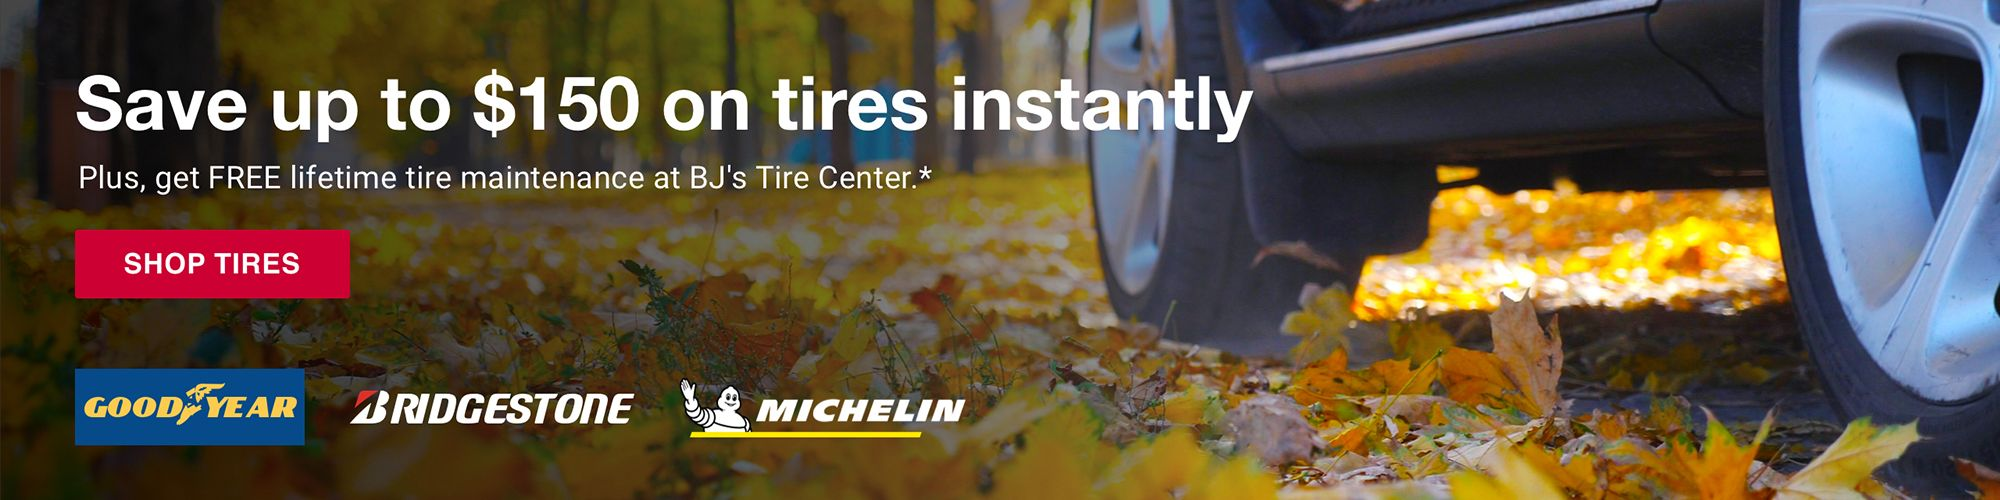 Save up to $150 on tires instantly. Plus get FREE lifetime tire maintenance at BJ's Tire Centers. Click to shop tires.